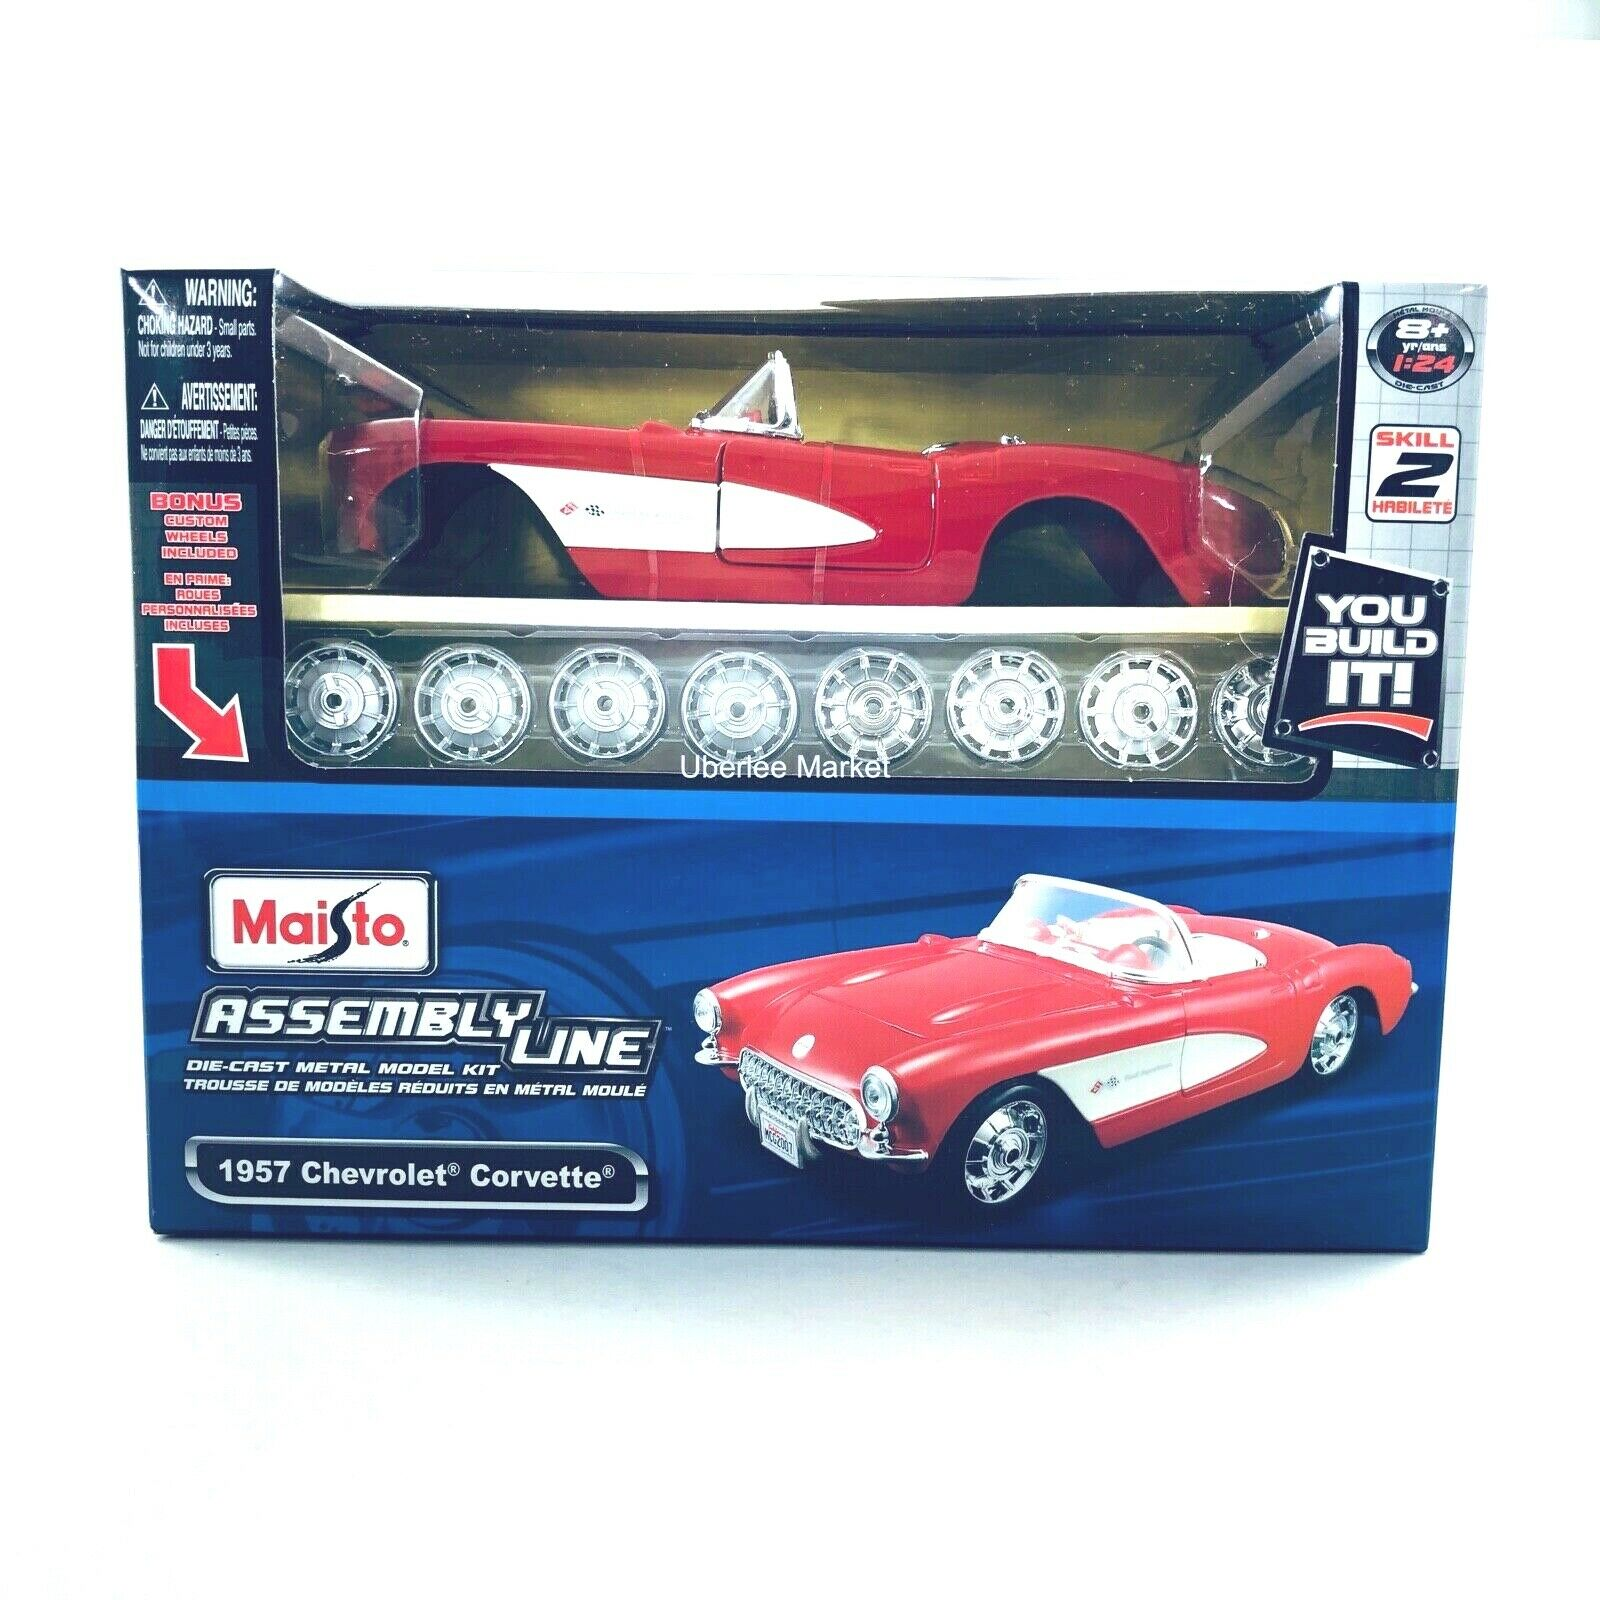 39275 1/24 AL '57 Chevrolet Corvette Red/White Metal MAIS927